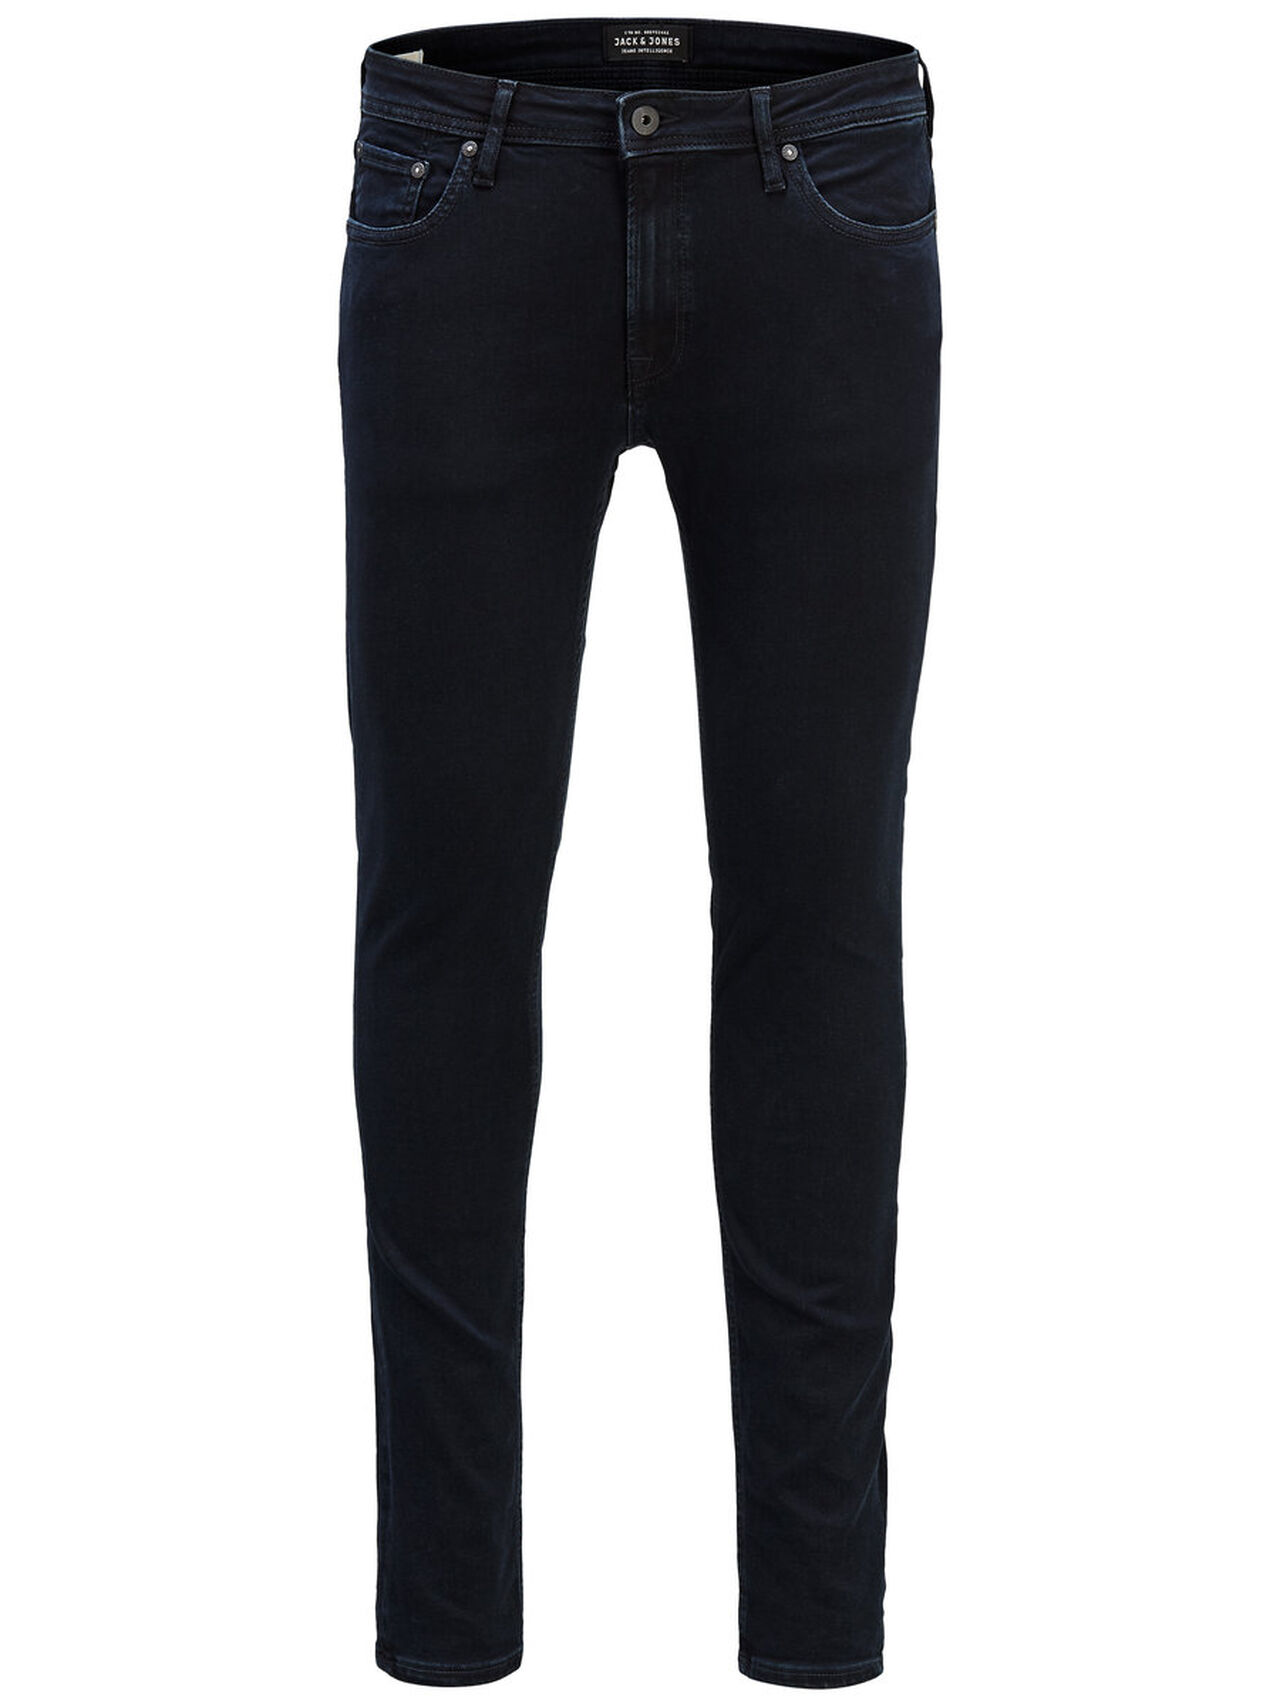 JACK & JONES Liam Original Am 647 Skinny Fit Jeans Men black